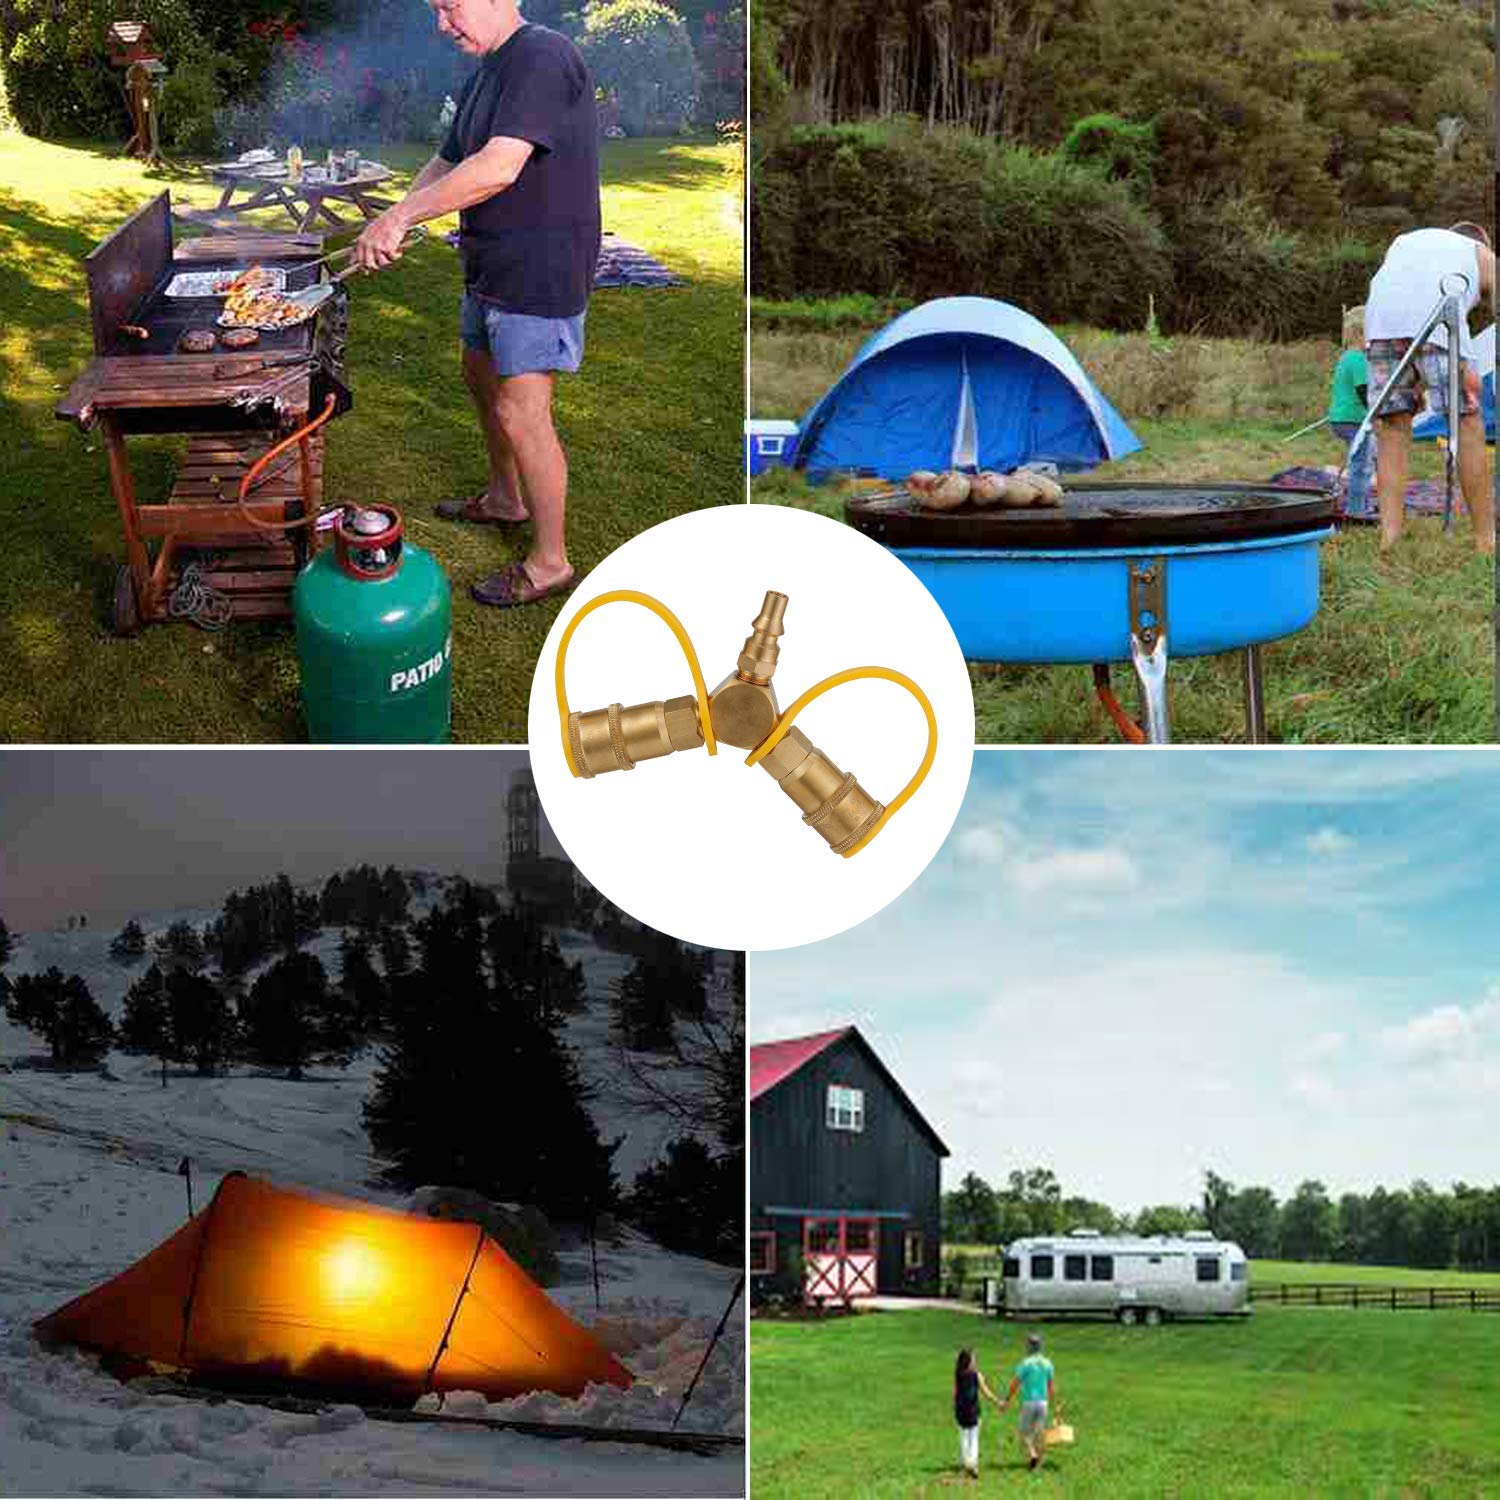 BBQ Kohree 1//4 RV Propane Quick Connect Y Splitter Adapter Hose Fittings for RV to Grill Quick Connect Propane Hose Connector Brass to Trailer Tabletap Heater Camping Stove Motorhome